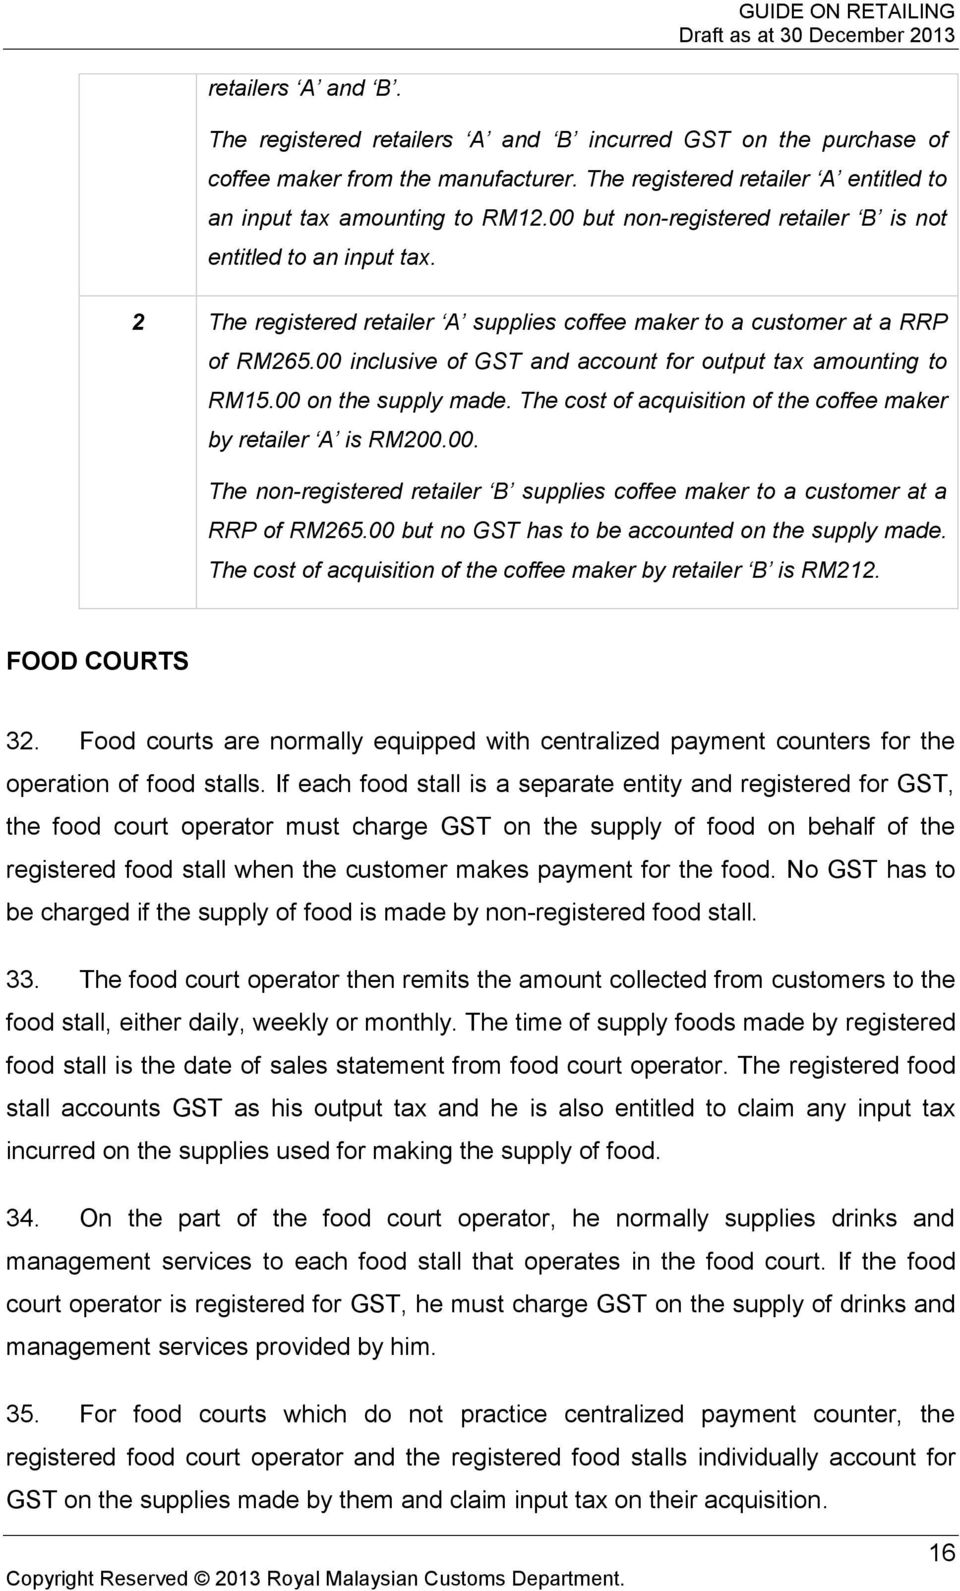 00 inclusive of GST and account for output tax amounting to RM15.00 on the supply made. The cost of acquisition of the coffee maker by retailer A is RM200.00. The non-registered retailer B supplies coffee maker to a customer at a RRP of RM265.